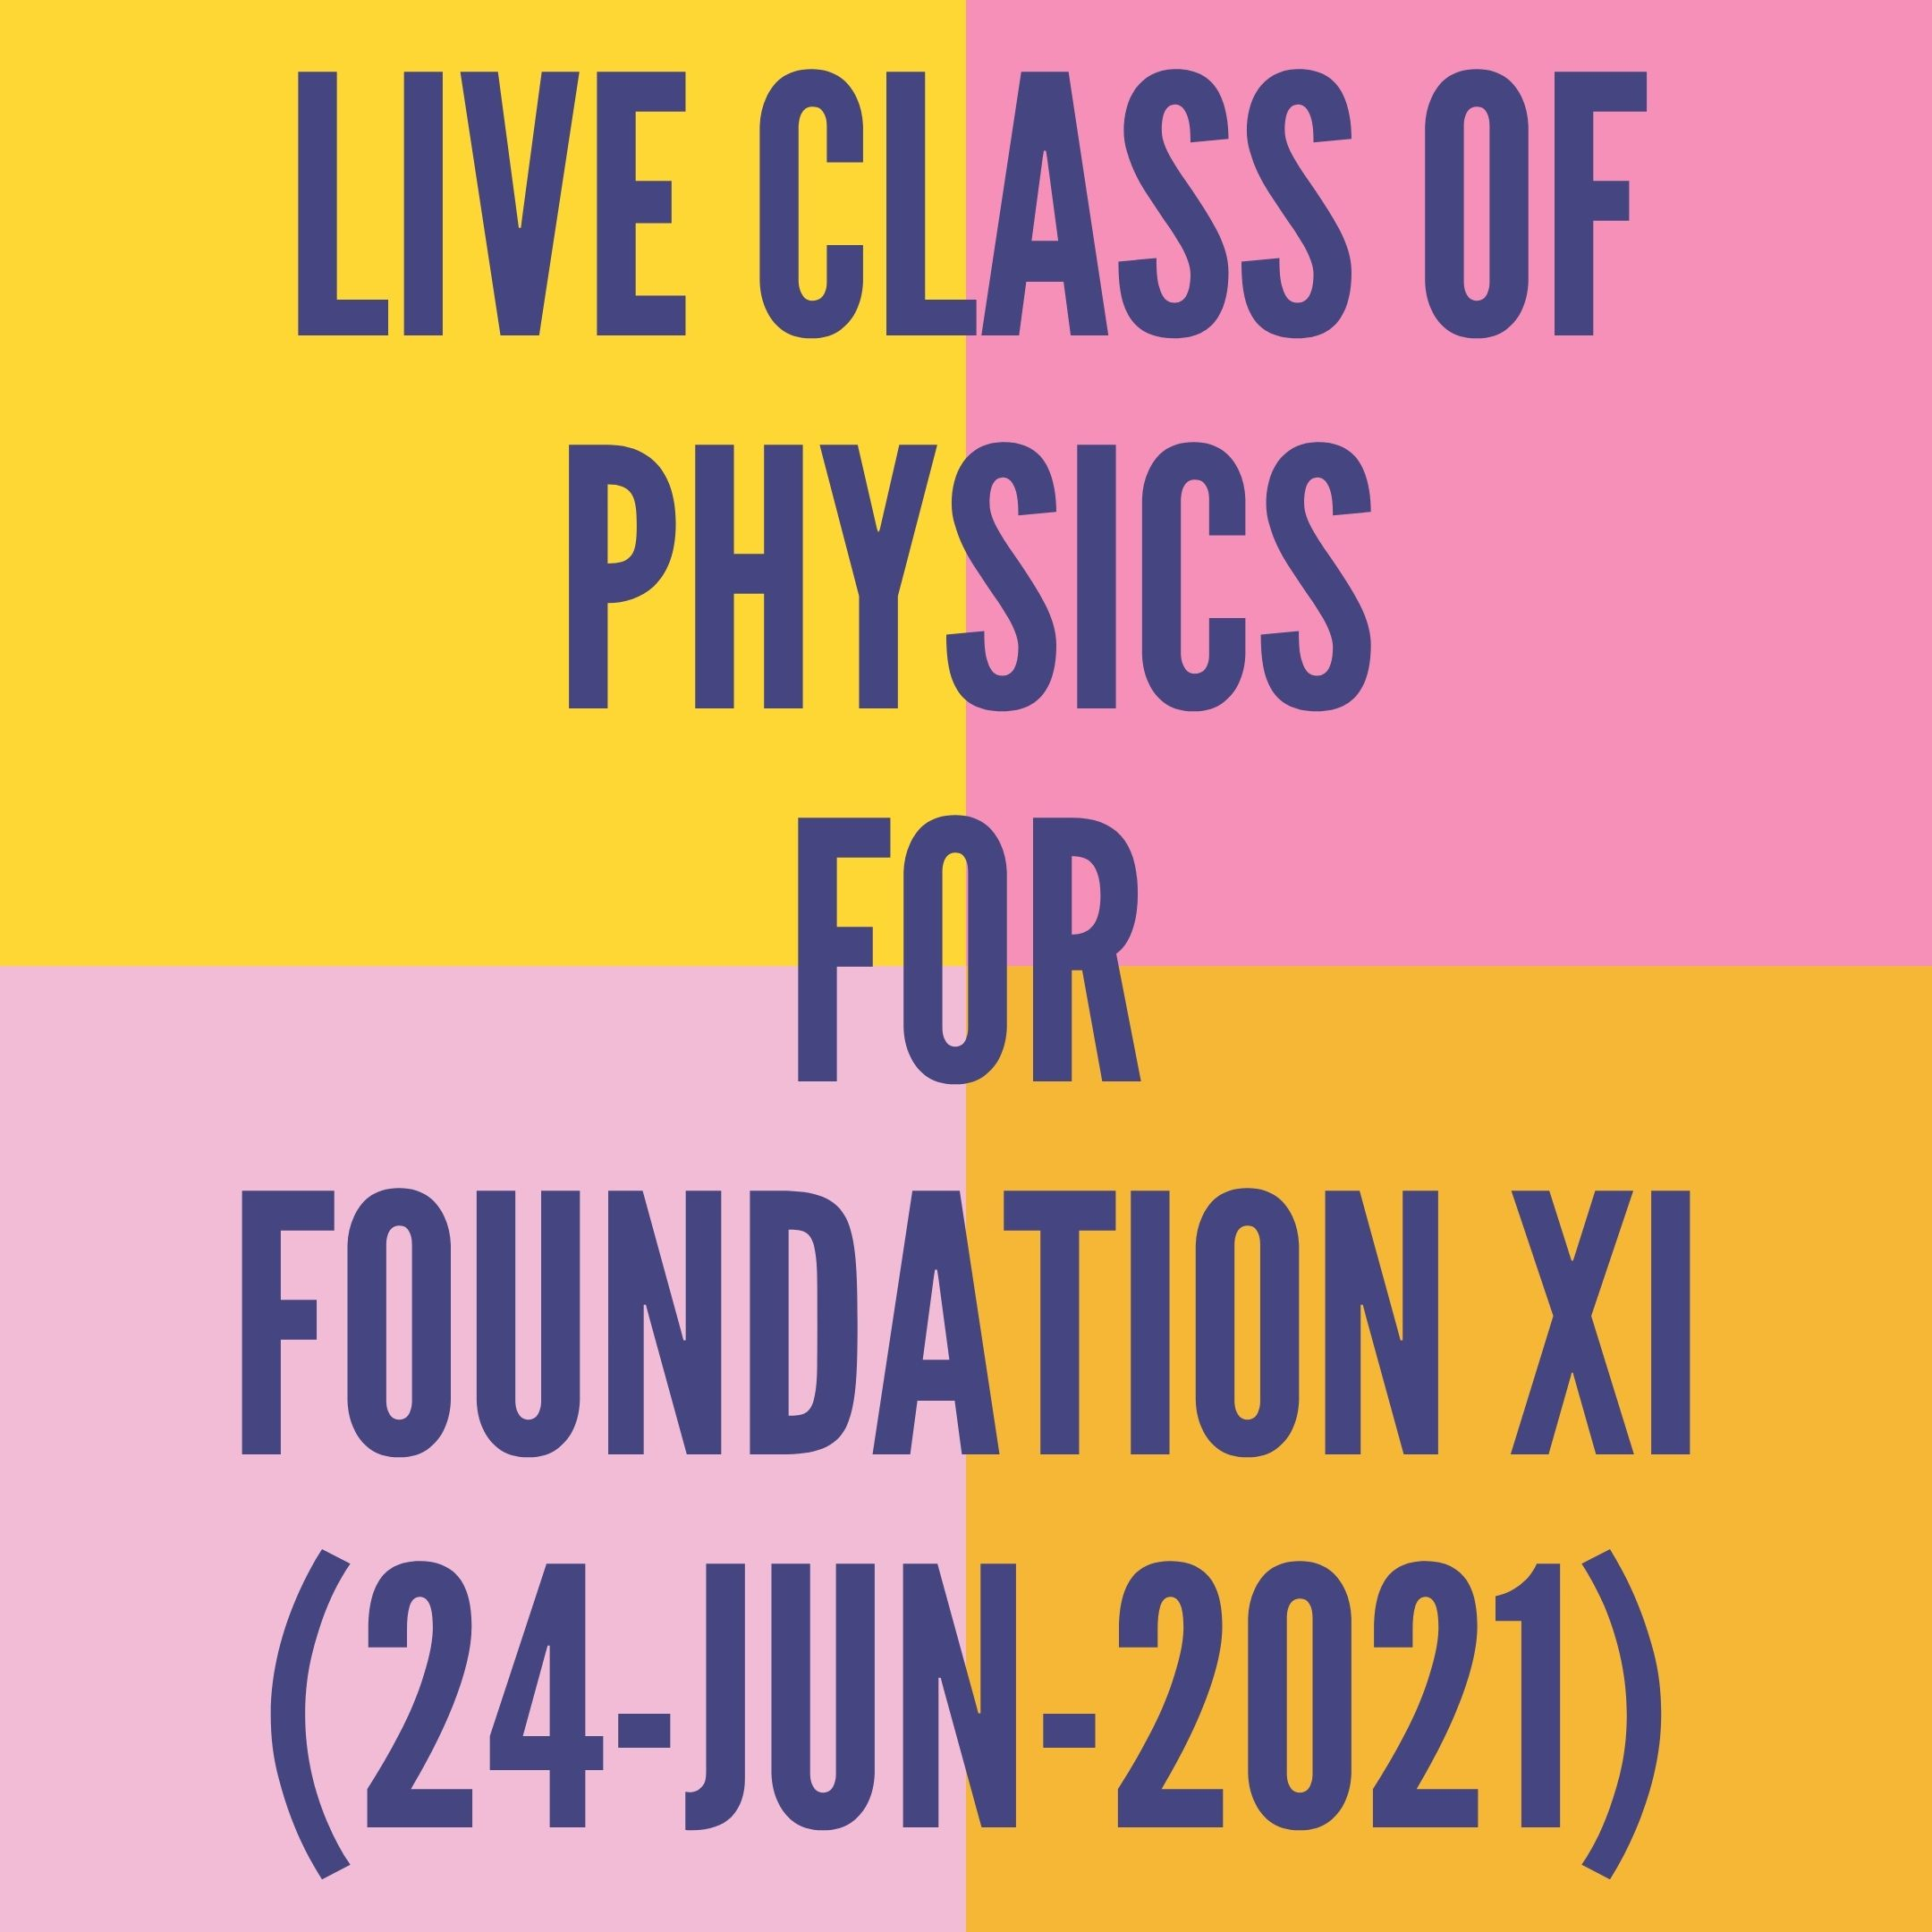 LIVE CLASS OF PHYSICS FOR FOUNDATION XI (24-JUN-2021) APPLIED MATHS